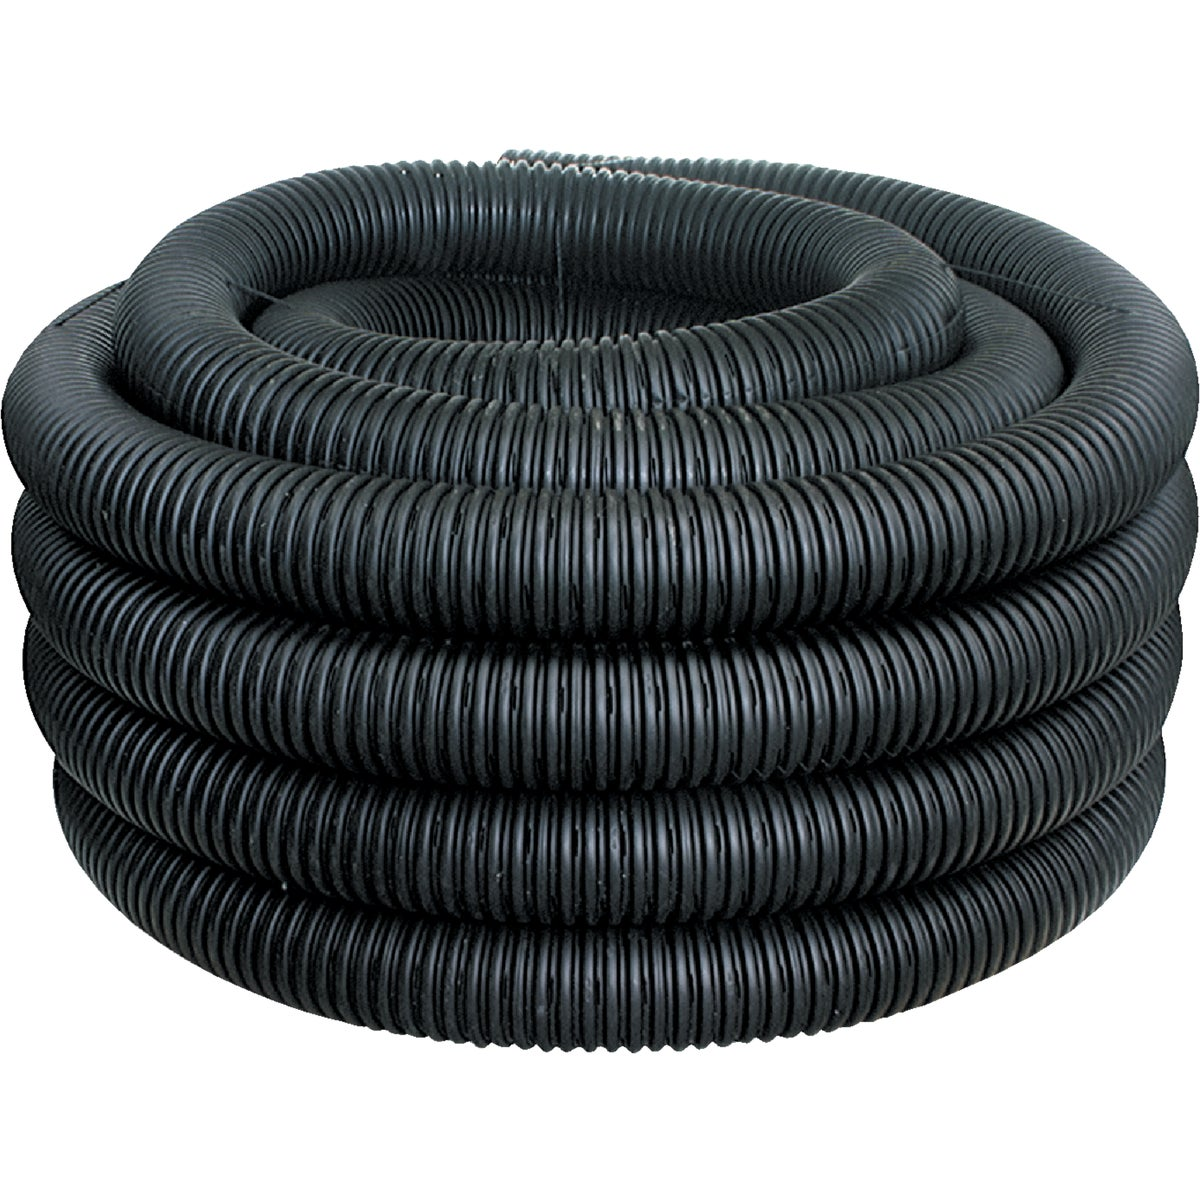 "4""X100' SLOTTED PIPE - 401-100 by Advanced Drainage Sy"